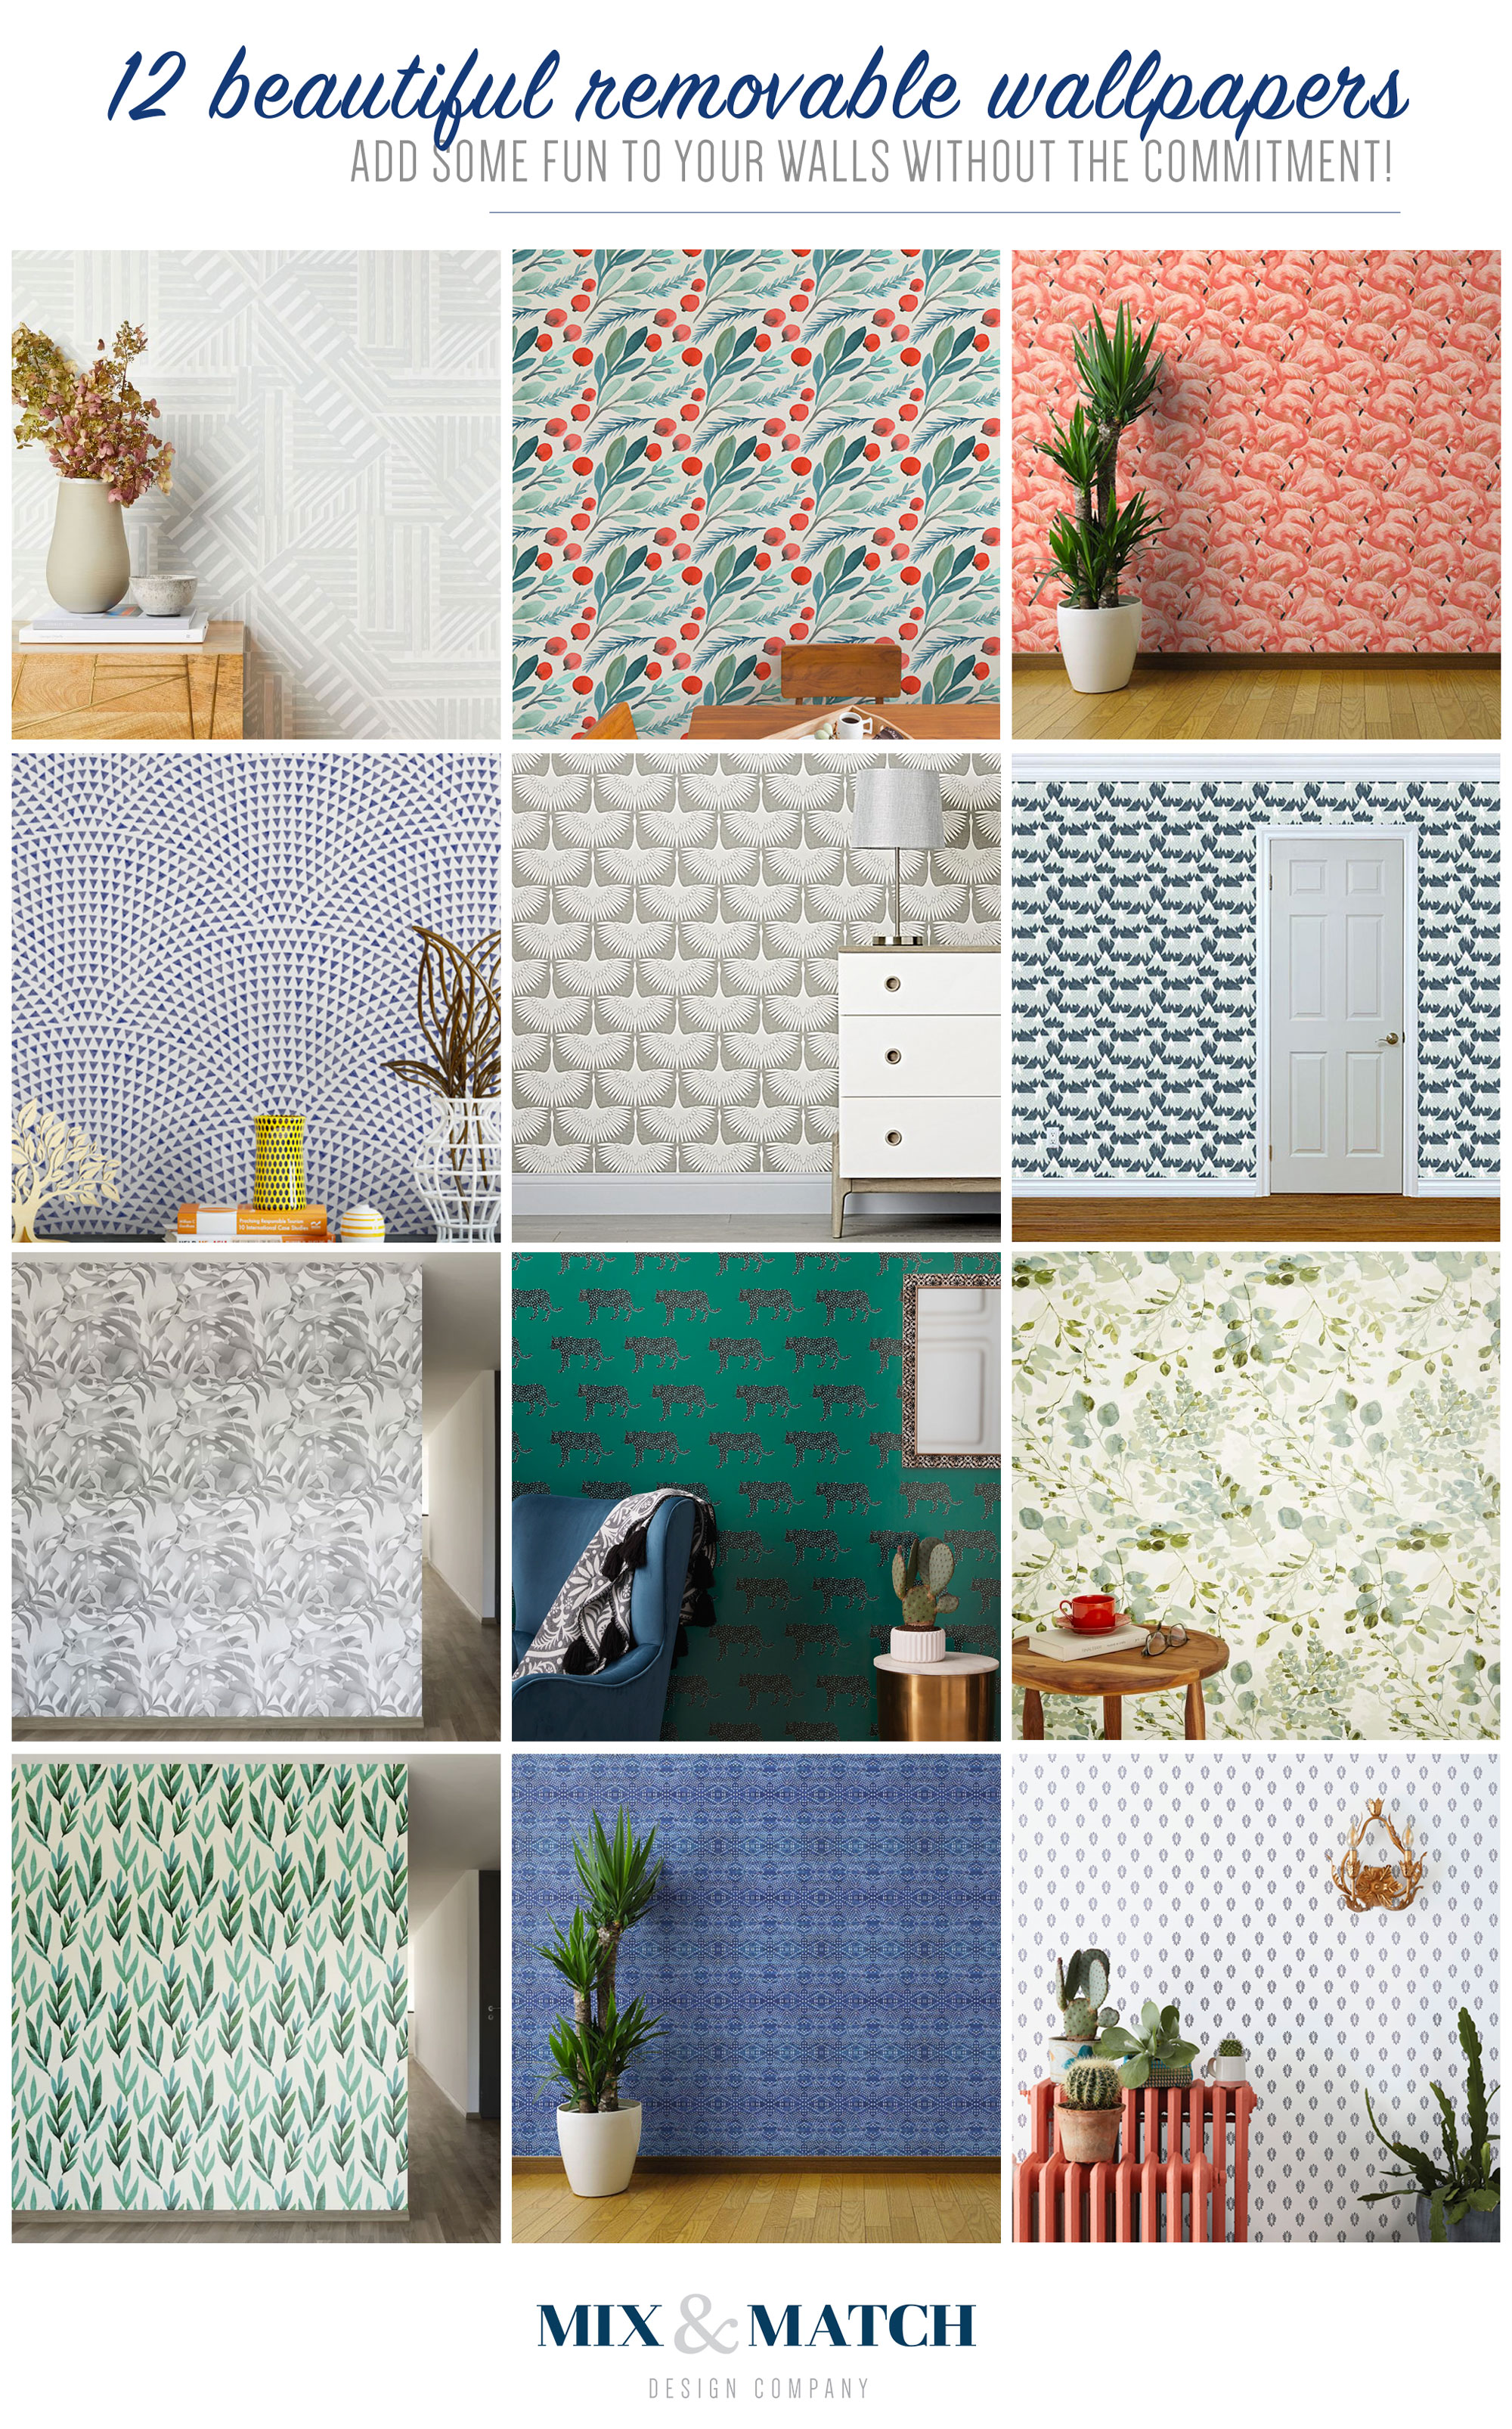 Looking to add some removable wallpaper to your home? Look no further! I've got twelve awesome ones to choose from on the blog. Temporary wallpaper is perfect for renters or for those of us who want to try something without a high commitment.